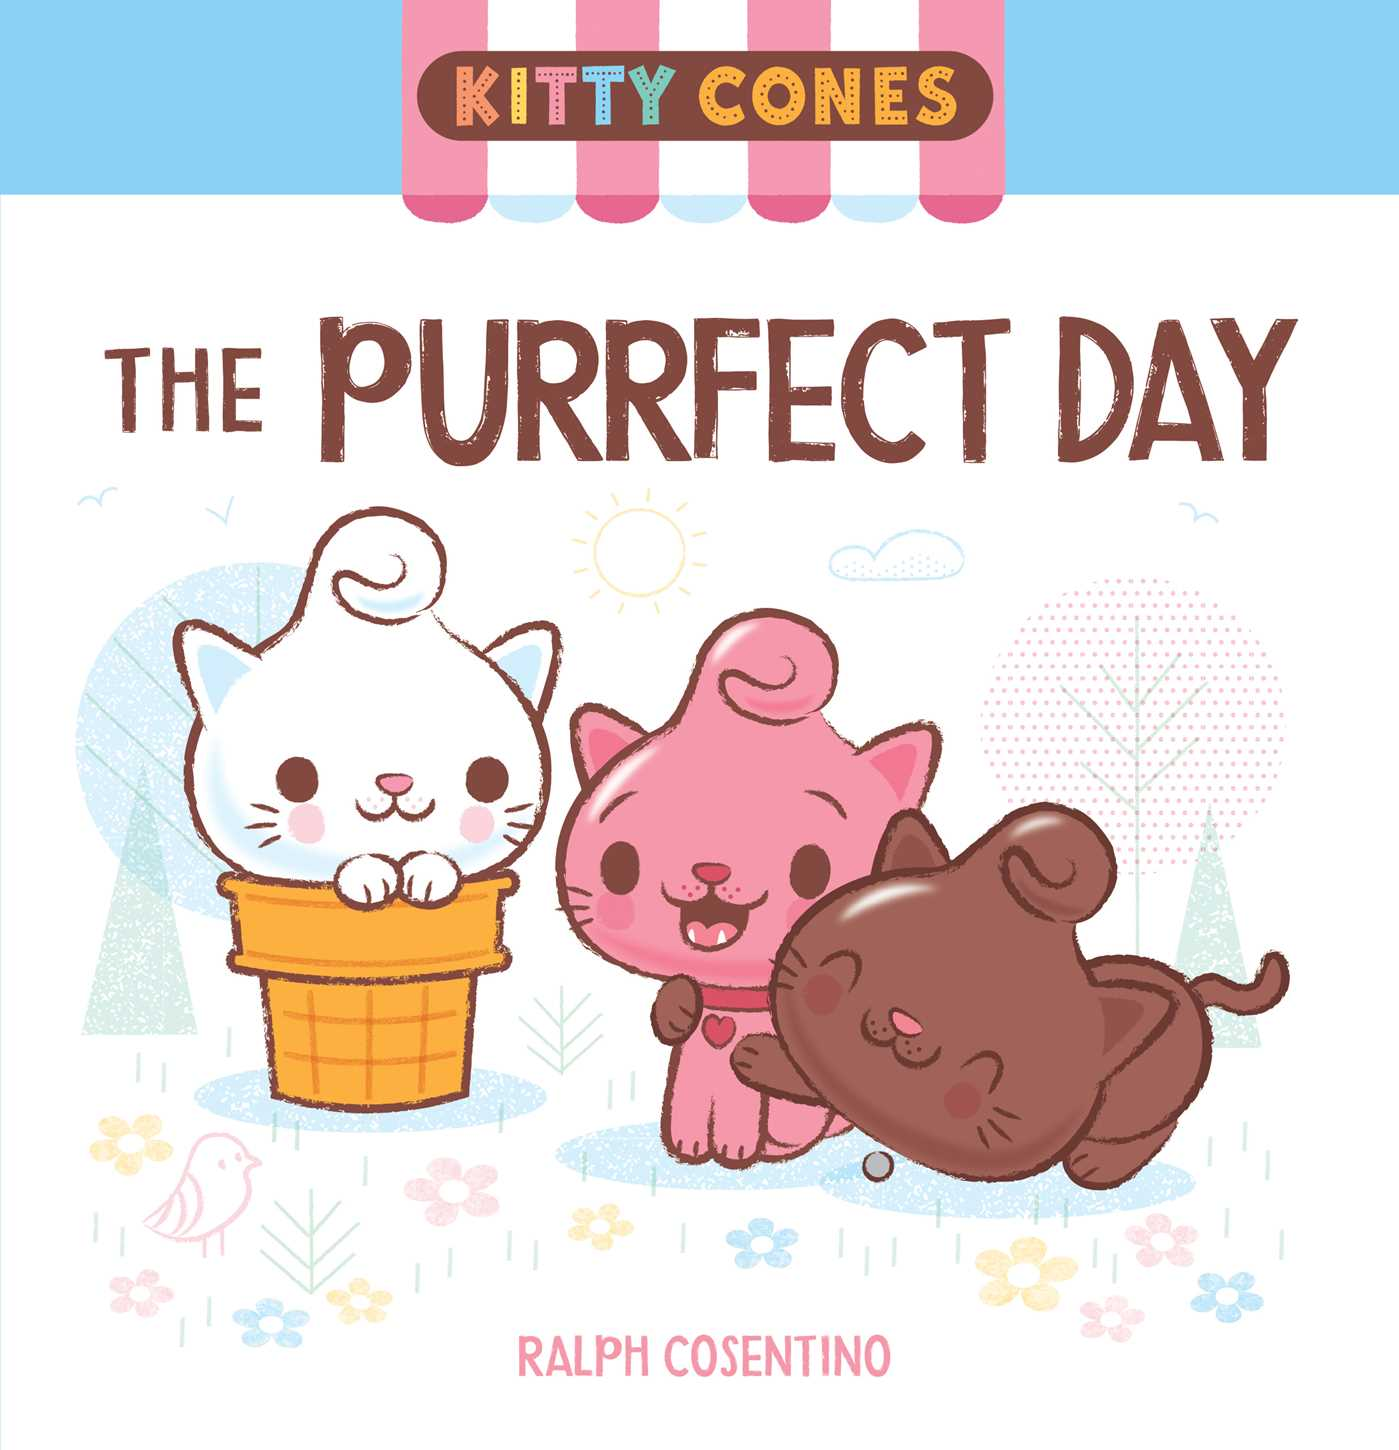 Kitty cones the purrfect day 9781683832393 hr